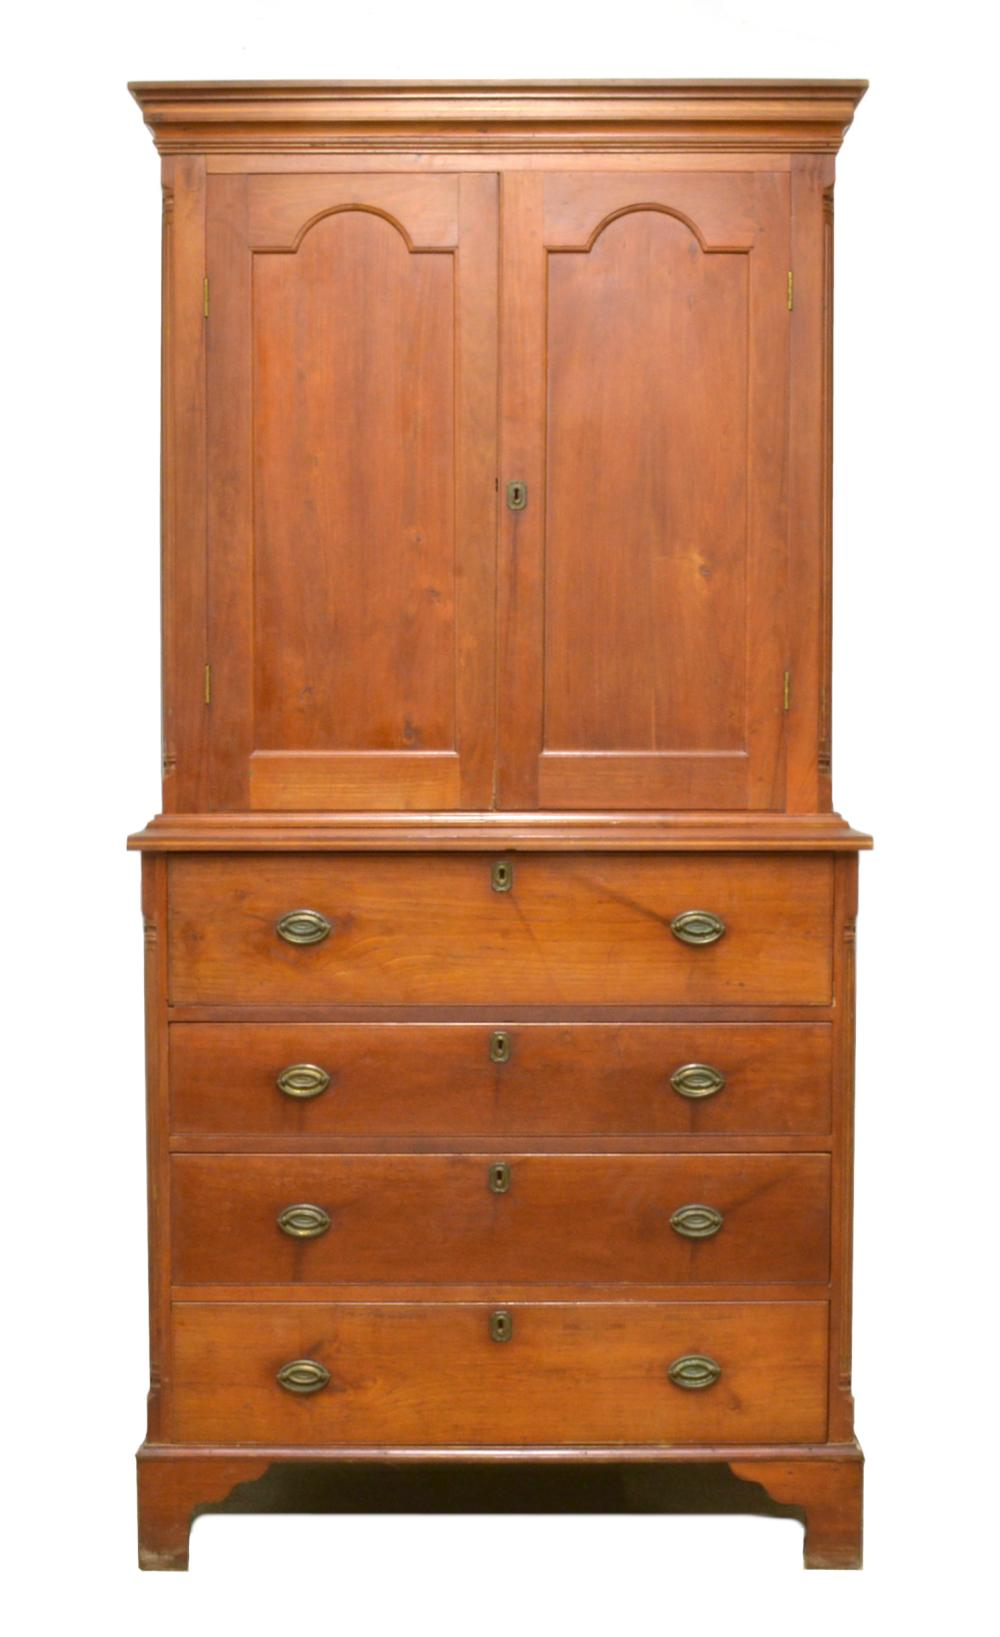 Amherst Virginia 1840 Walnut And Cherry Butlers Secretary Desk Bookcase